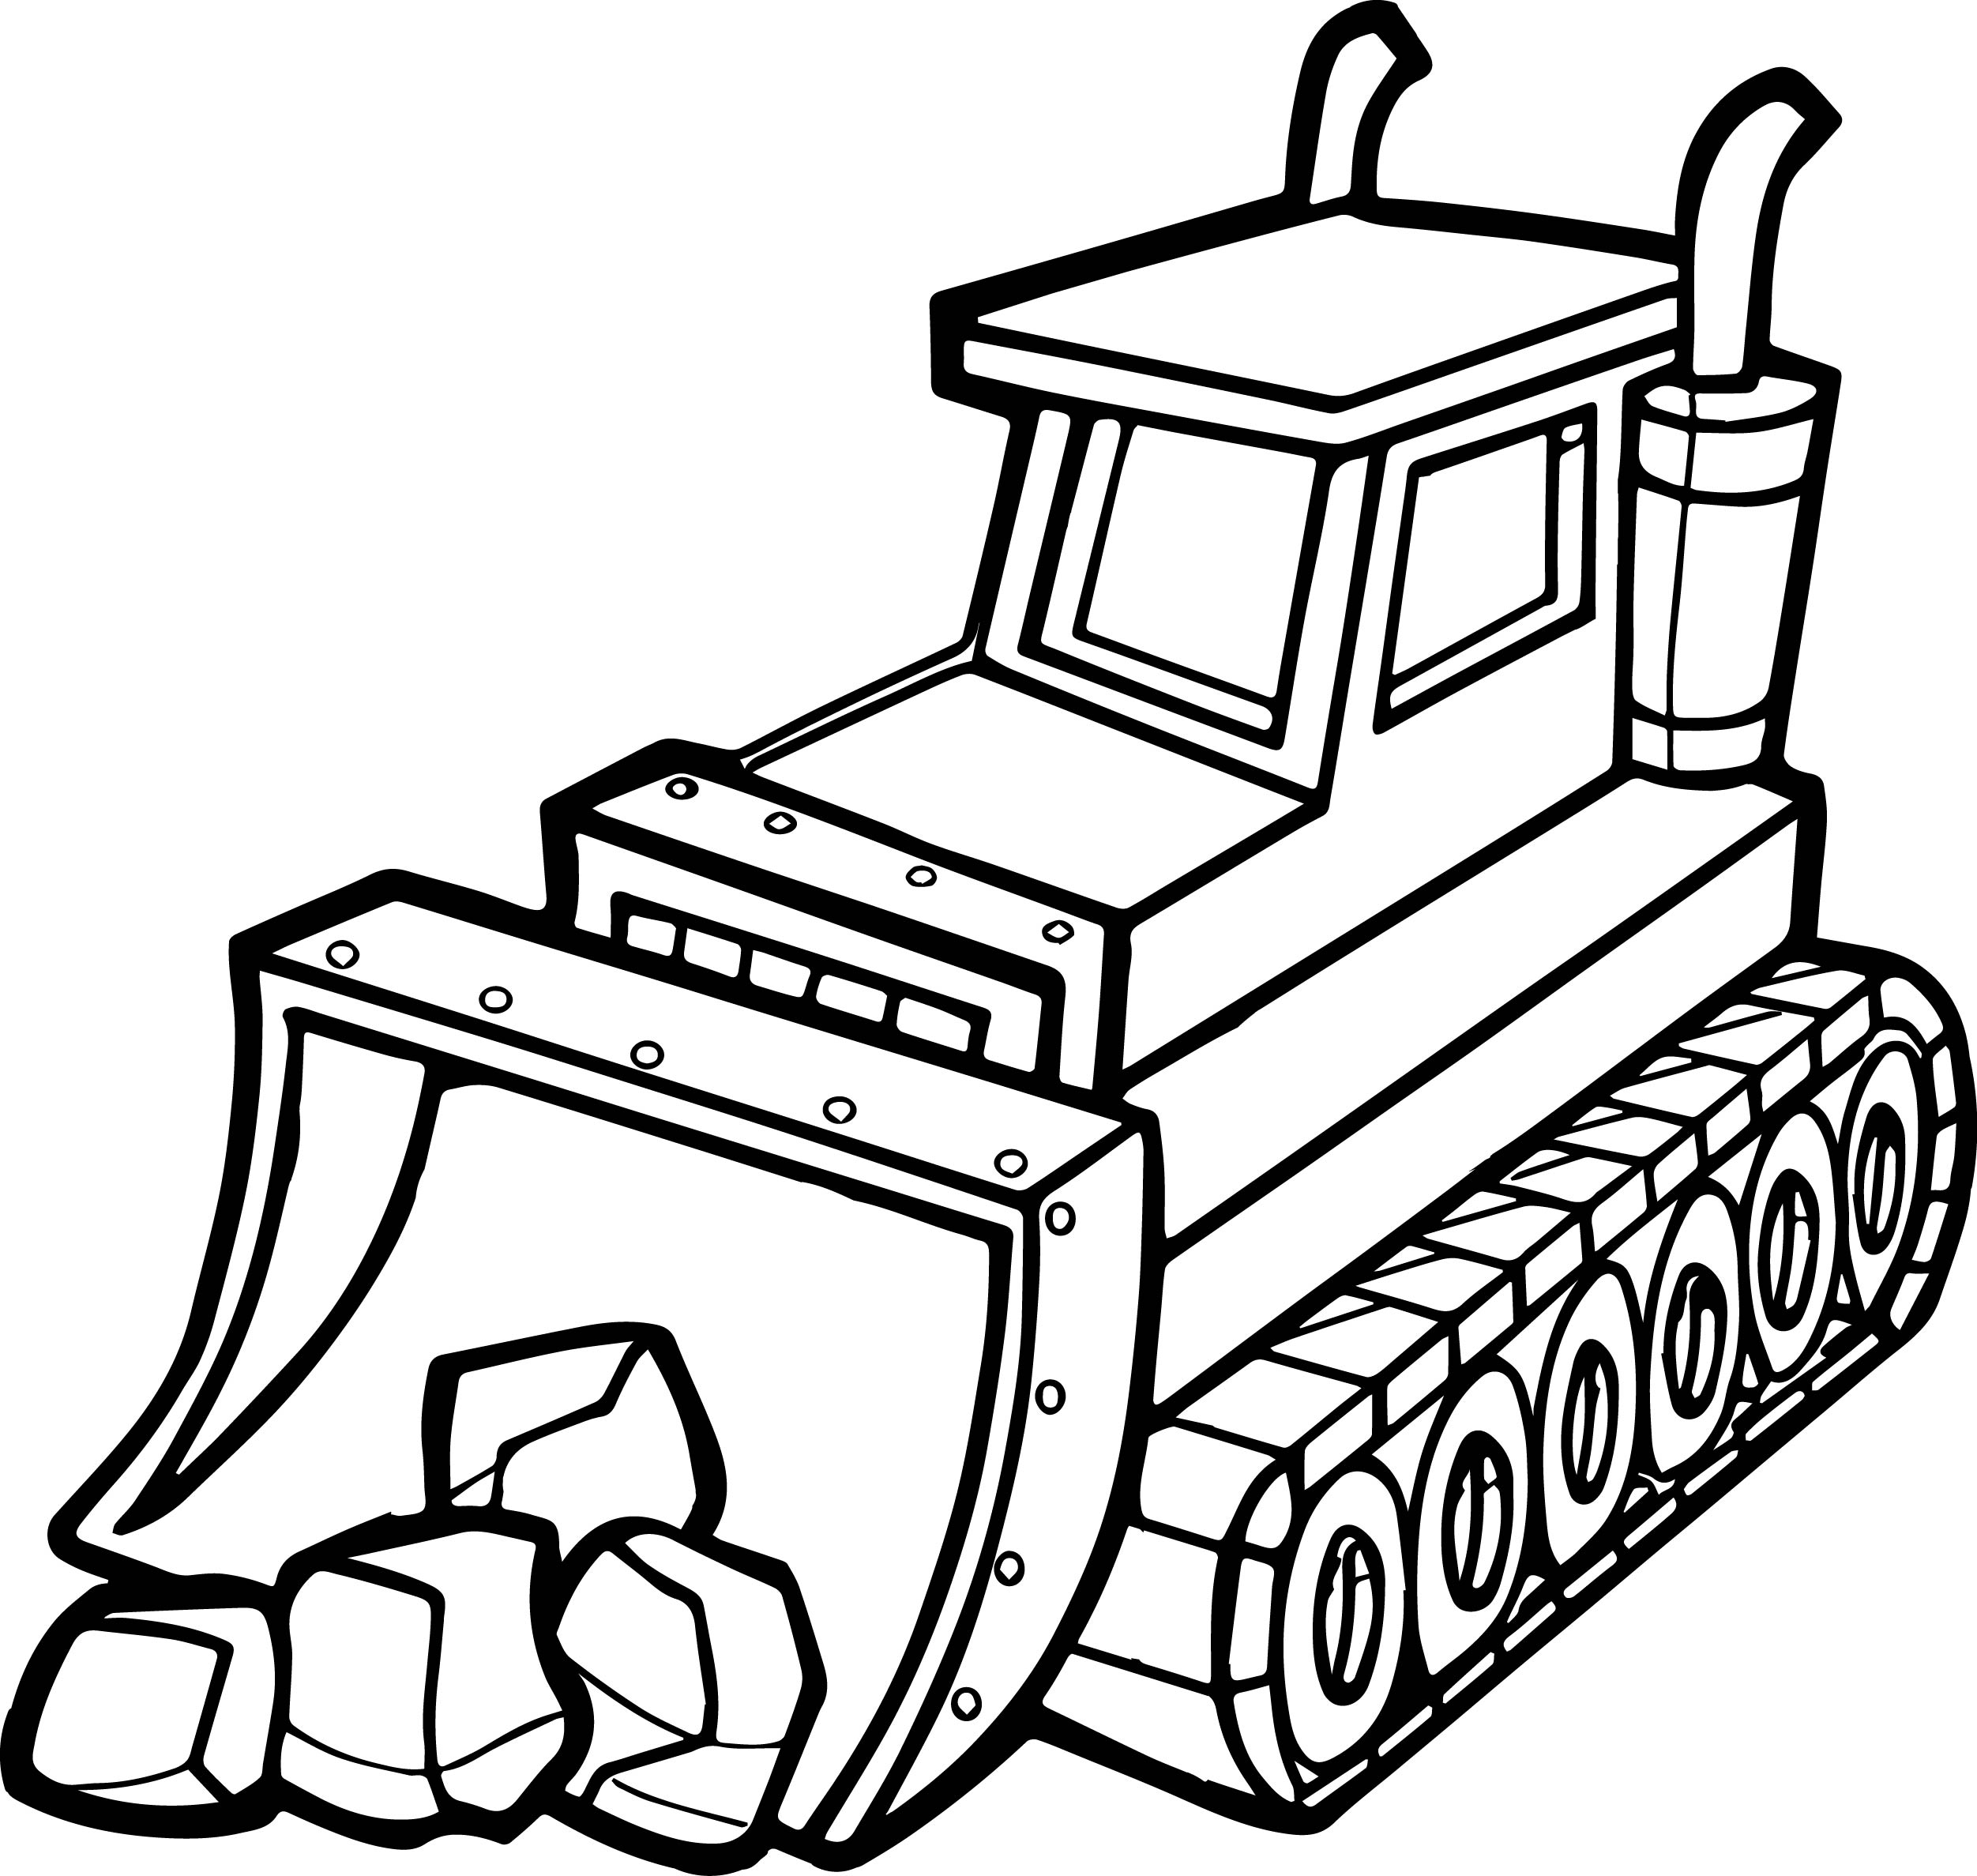 bulldozer pictures to color bulldozer with straight blade coloring page bulldozer to bulldozer color pictures